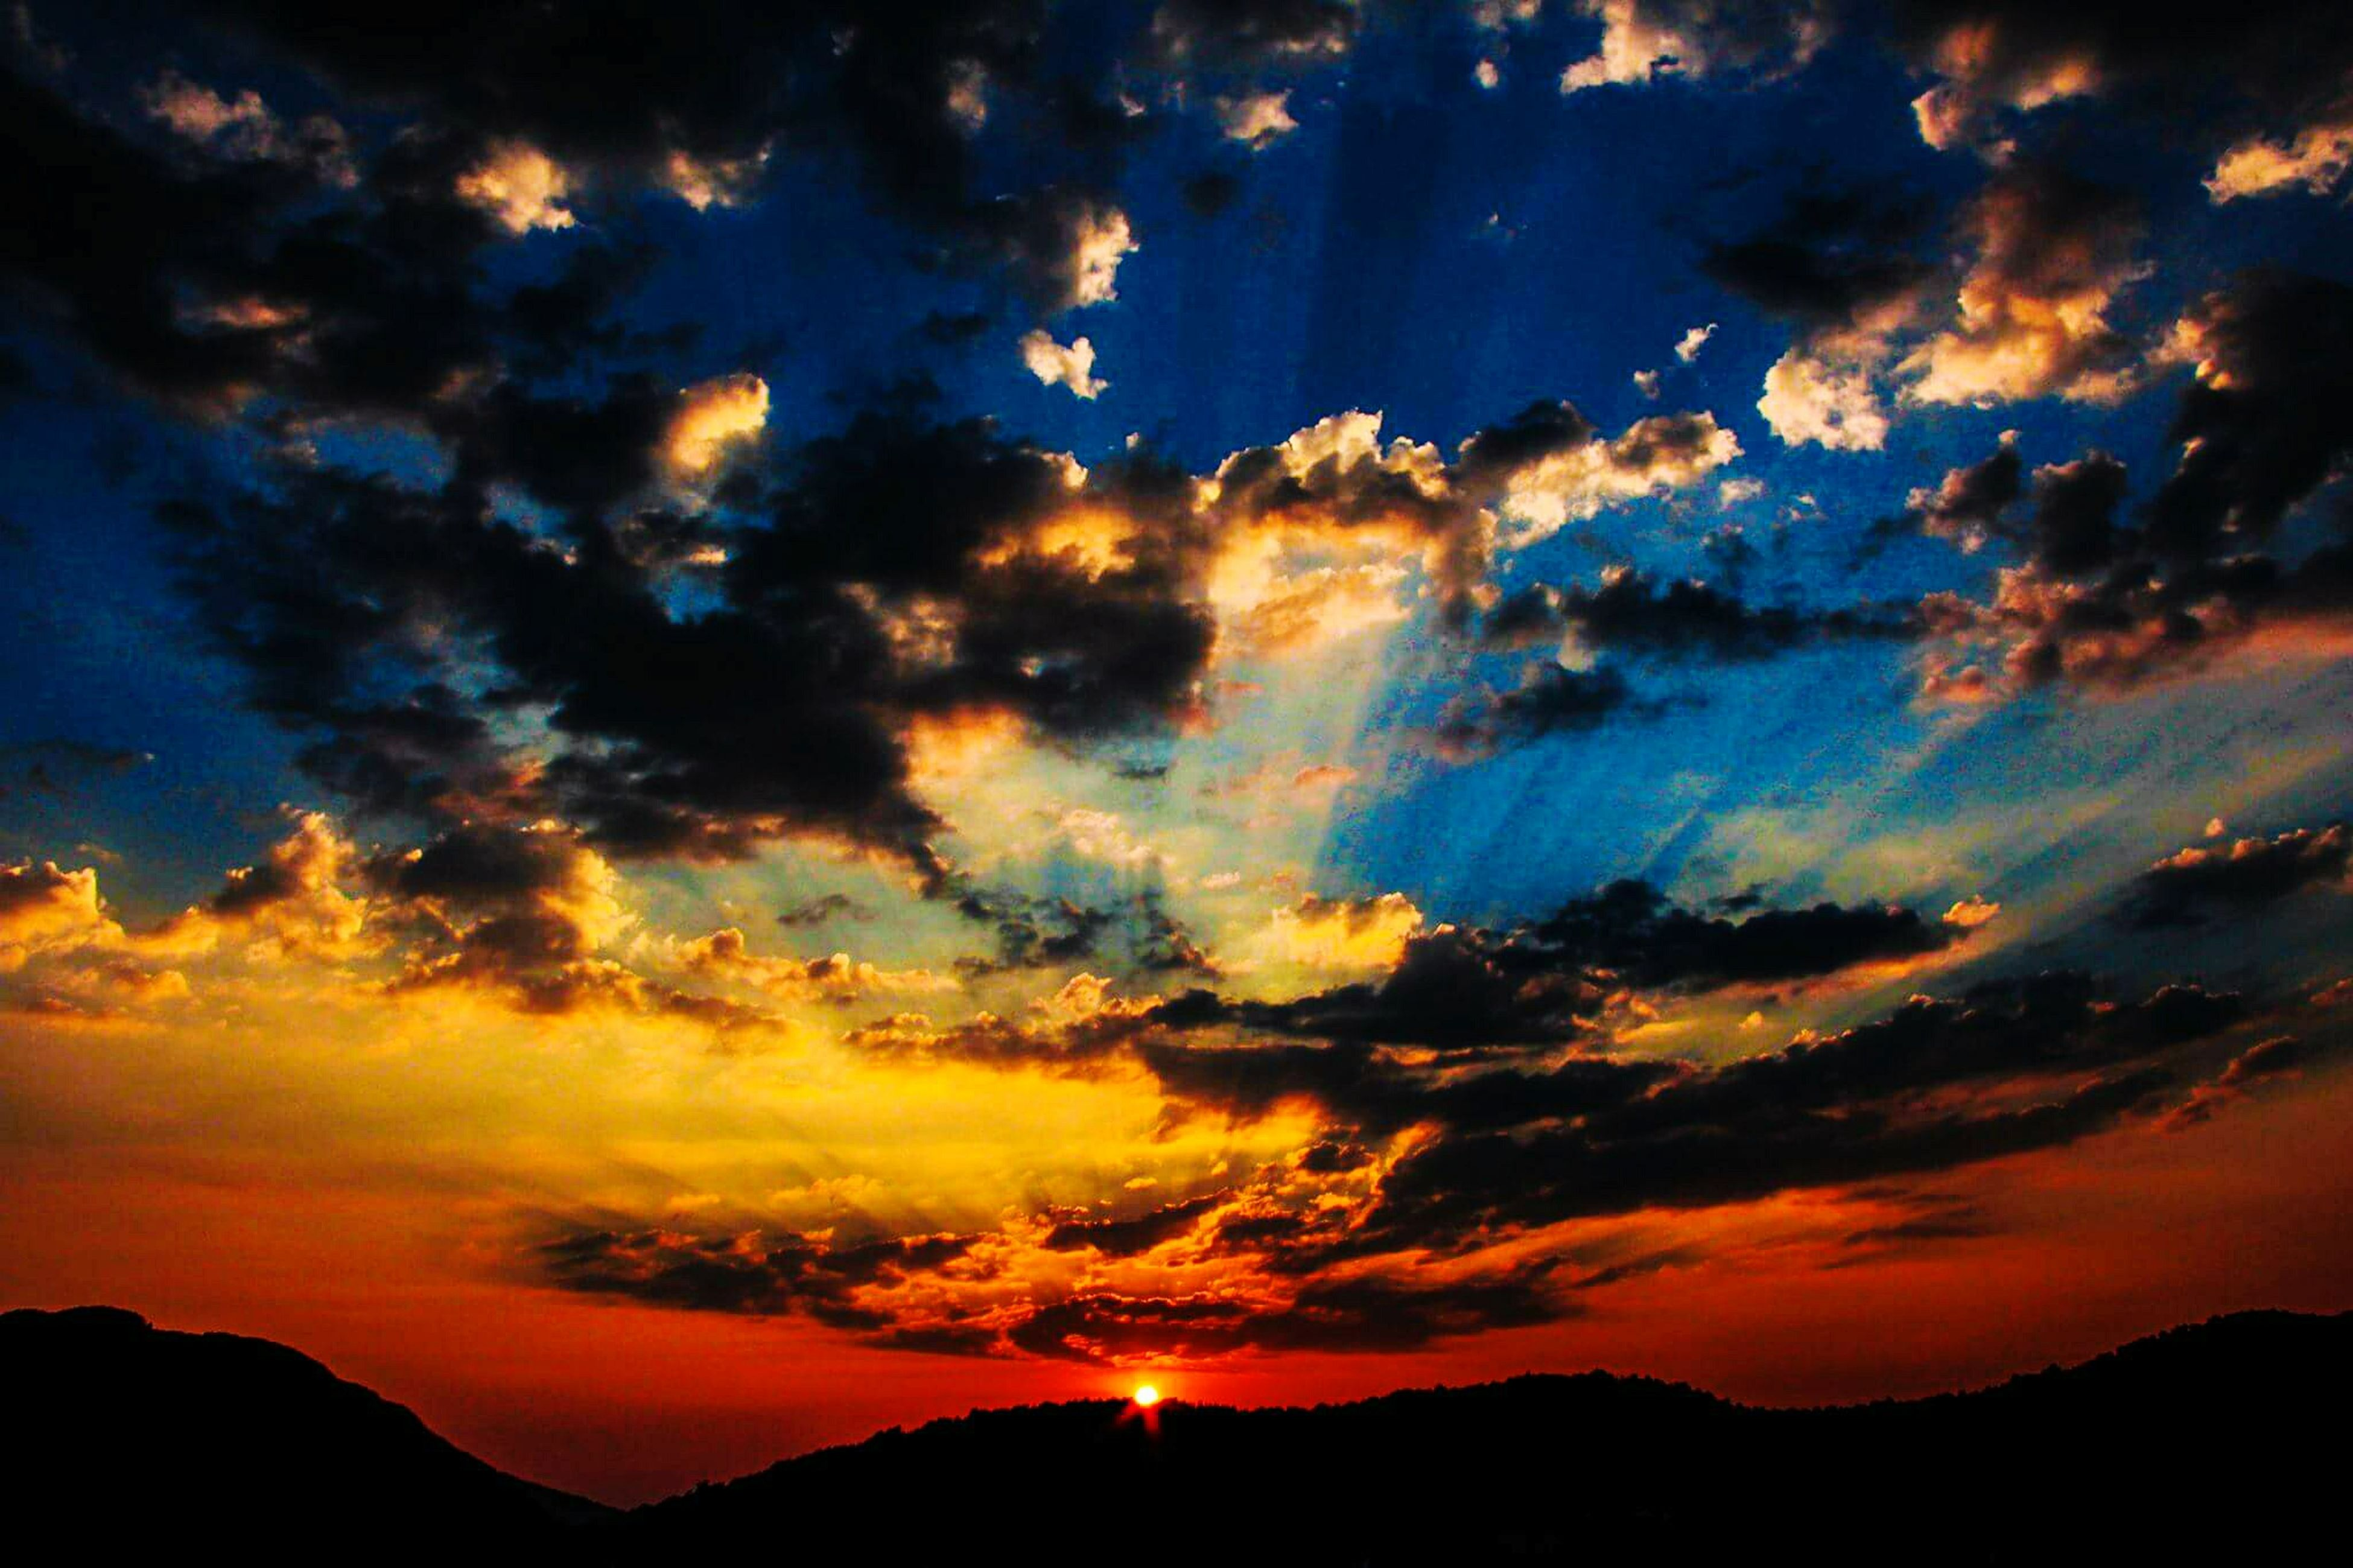 sunset, scenics, sky, silhouette, beauty in nature, tranquil scene, tranquility, cloud - sky, dramatic sky, orange color, idyllic, nature, mountain, majestic, cloud, landscape, cloudy, atmospheric mood, moody sky, awe